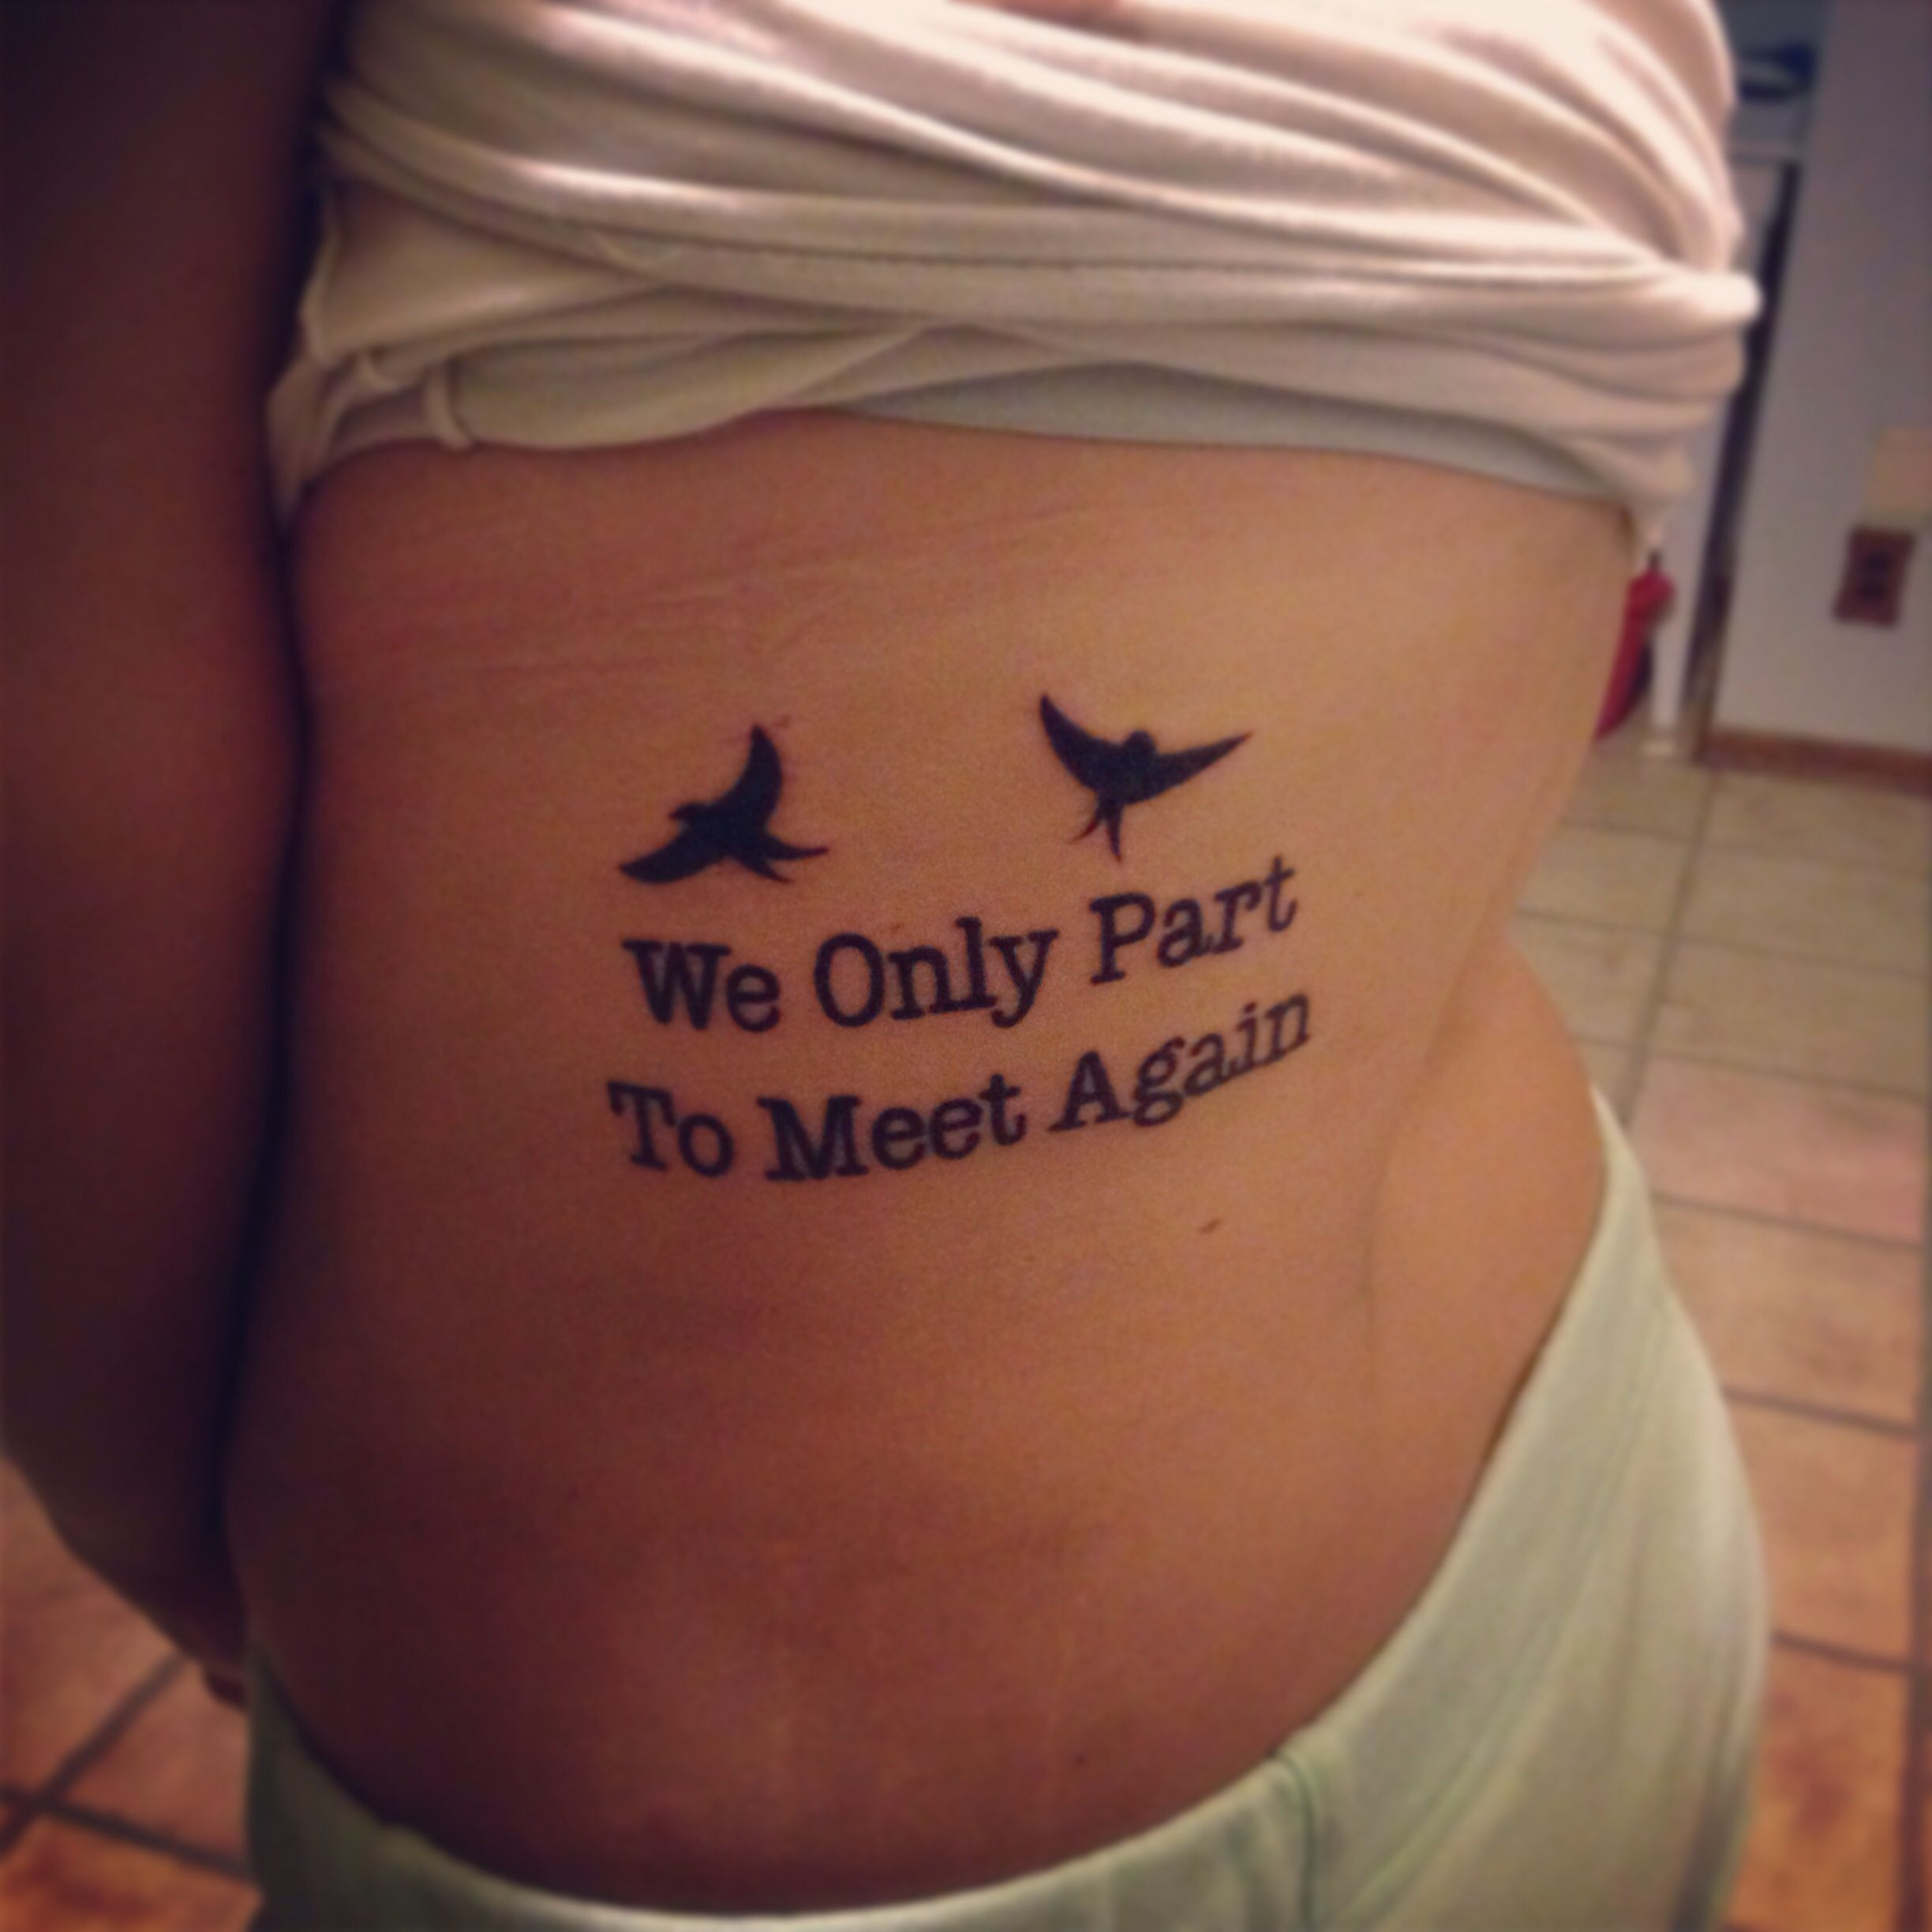 Tattoo Cursive Black Rip Birds Quote For Every: Tattoo For My Grandma ️